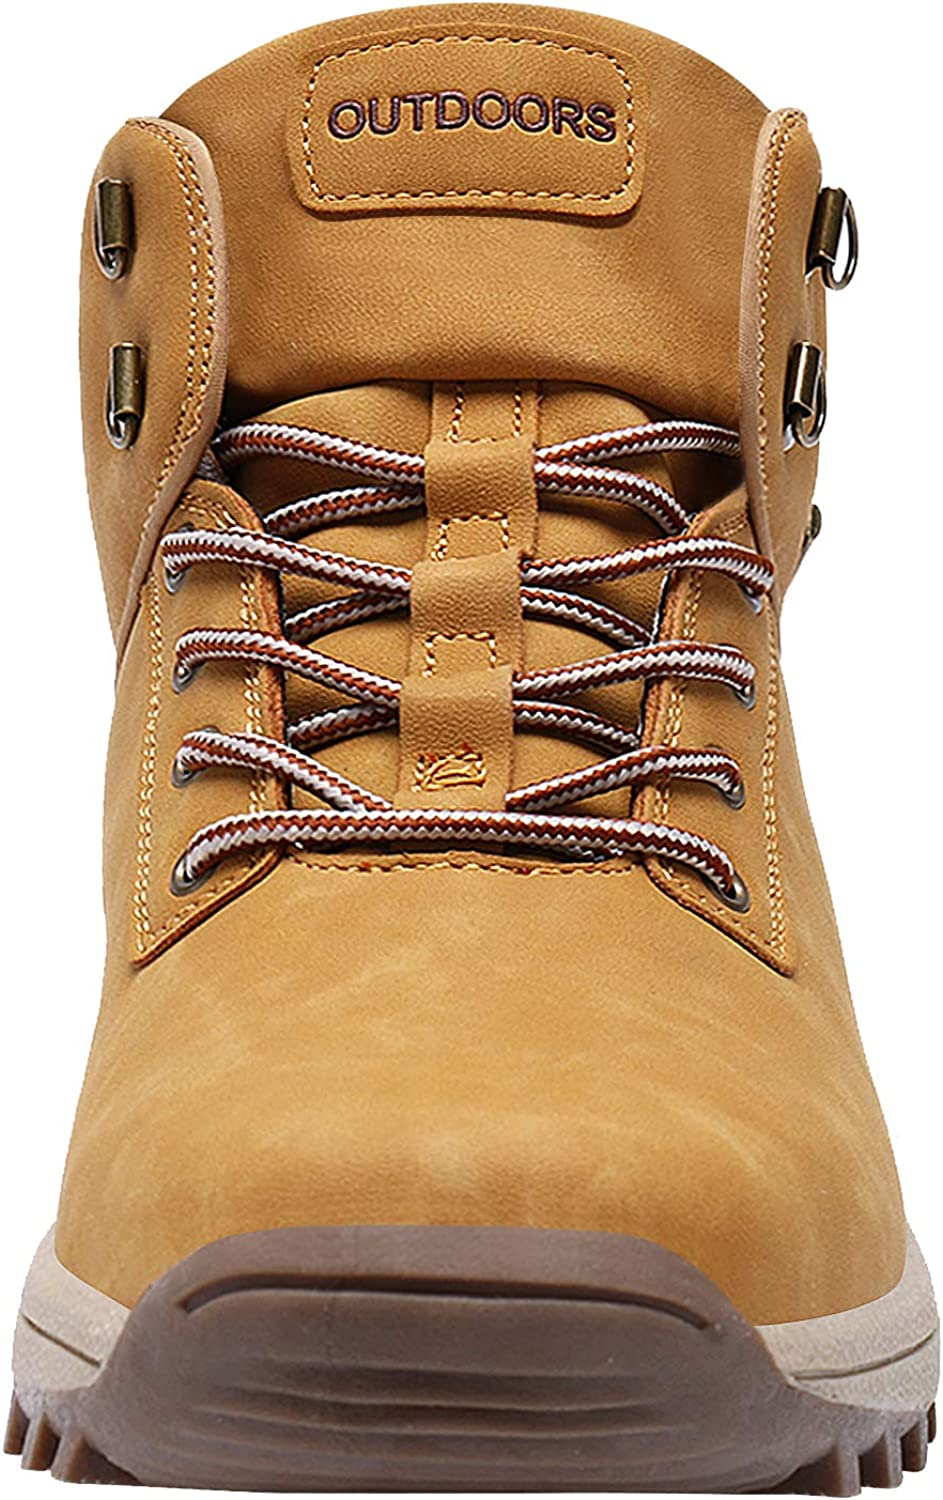 Caitin Mens Insulated Cold-Weather Boots Durable Hiking Boots Camel